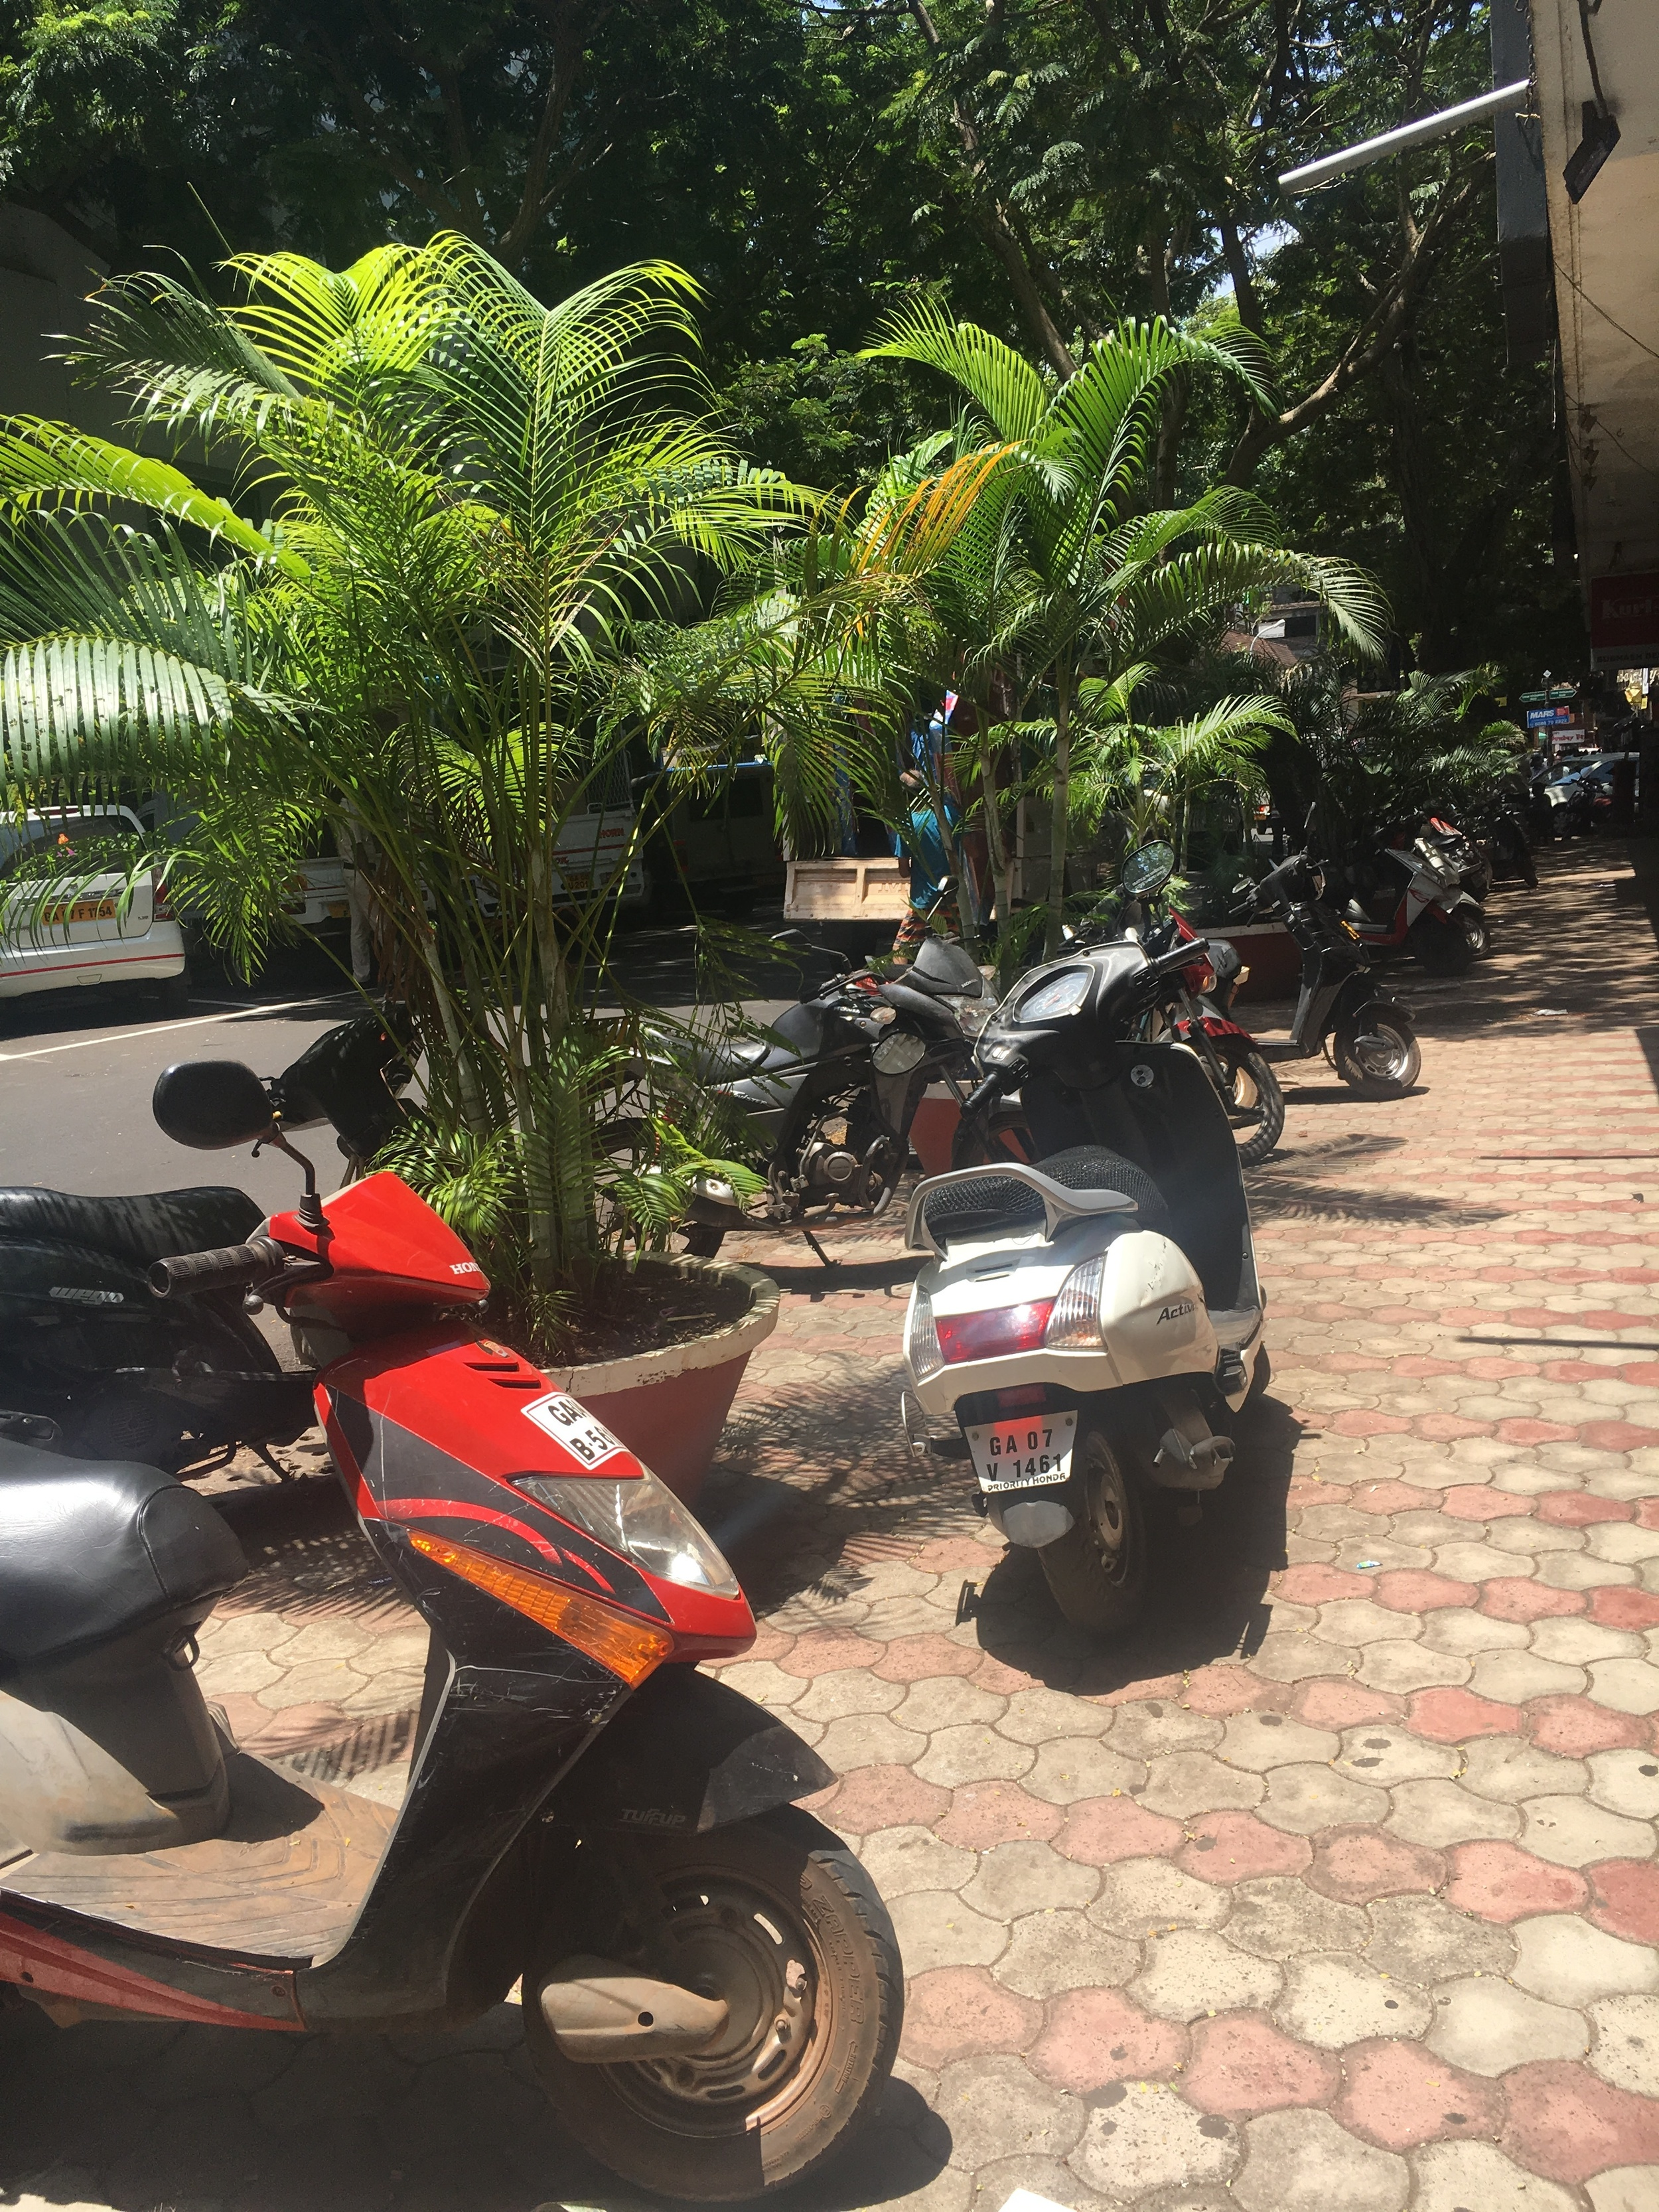 the walk over to the panaji town was incredible; scooters are everywhere.